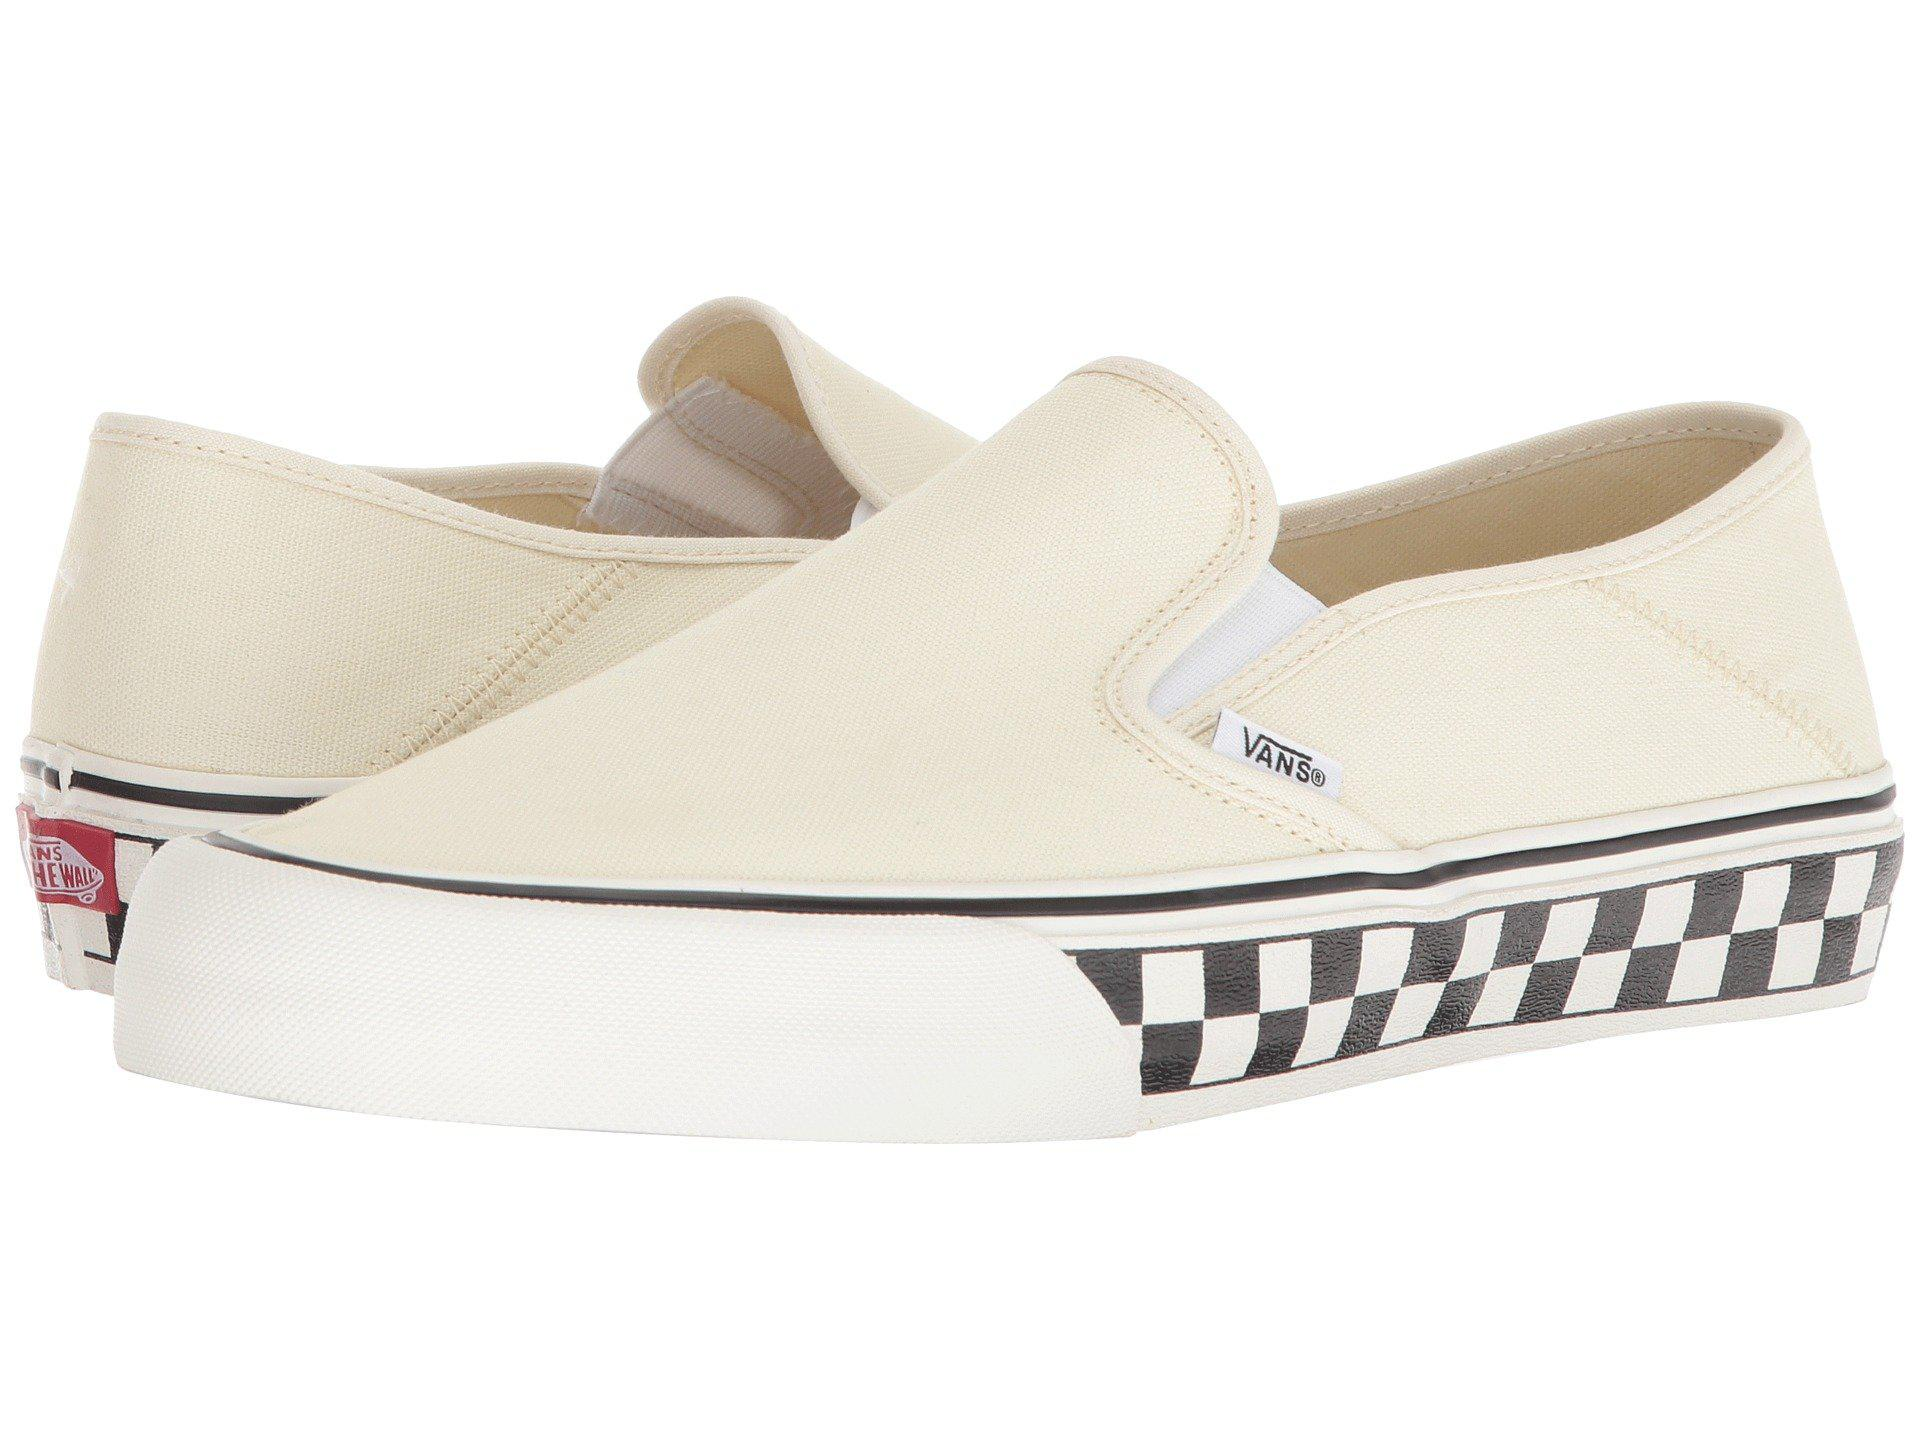 00b9f5a7cba2 Lyst - Vans Slip-on Sf in White